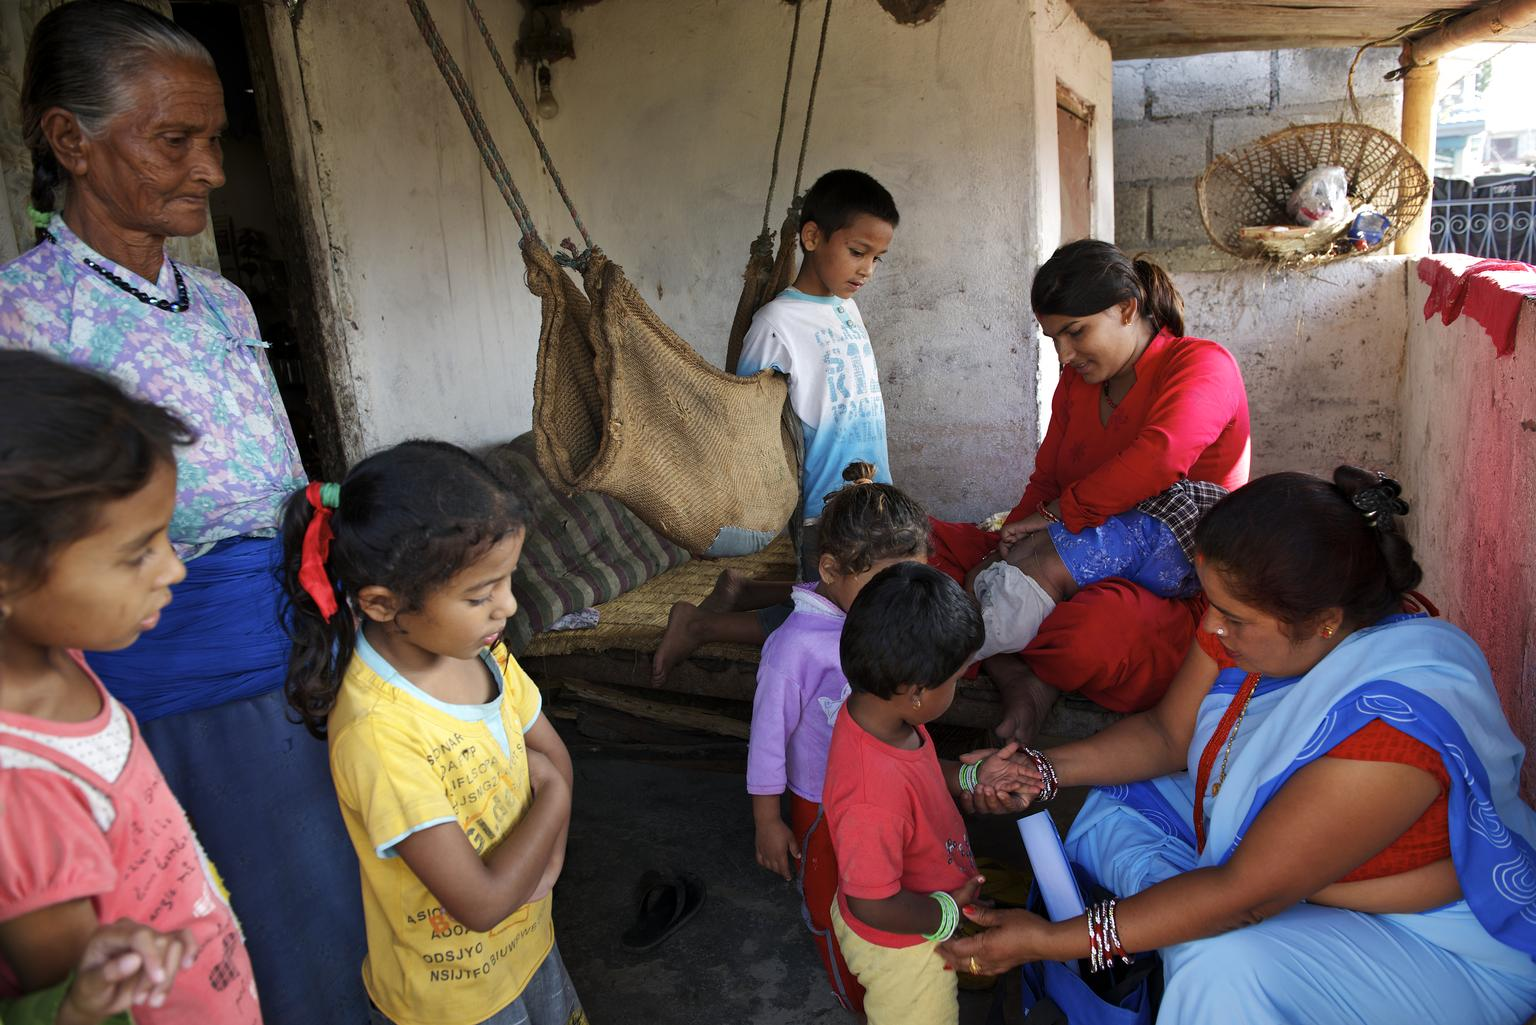 There are over 50,000 Community Health Volunteers in Nepal, and they play a very important role in delivering health services in the country.